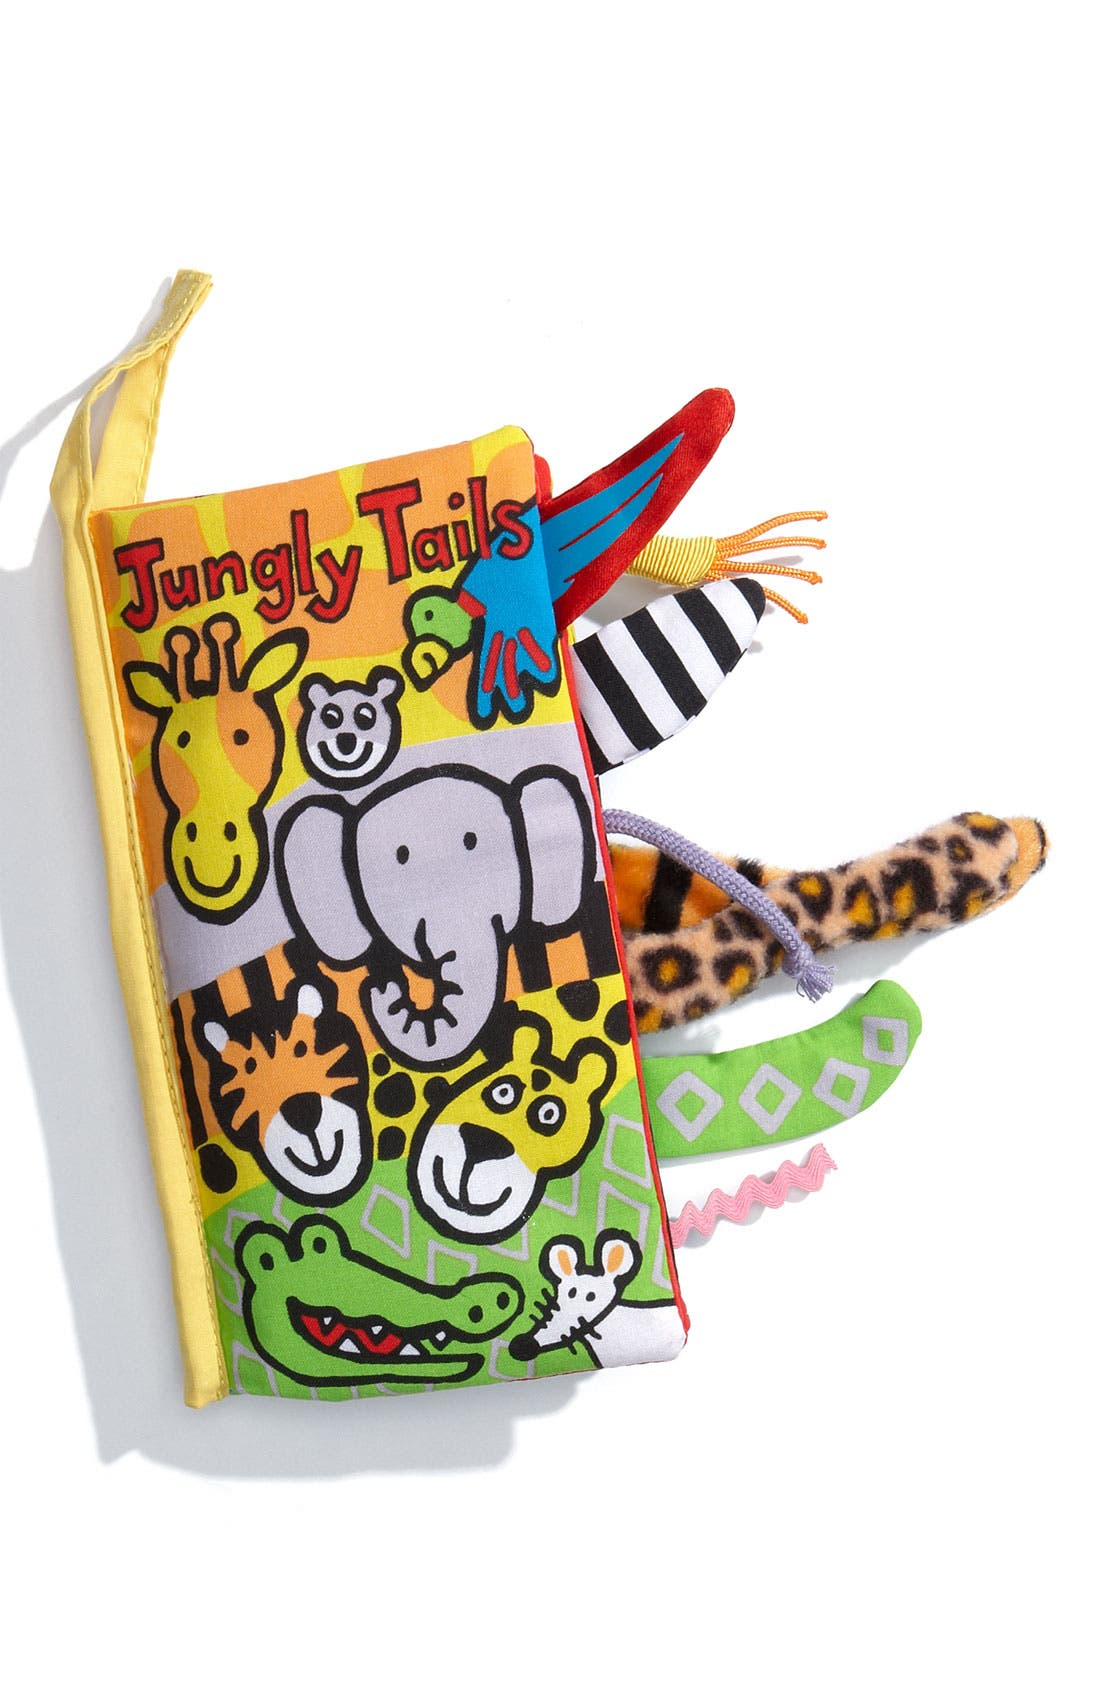 'Jungly Tails' Cloth Book